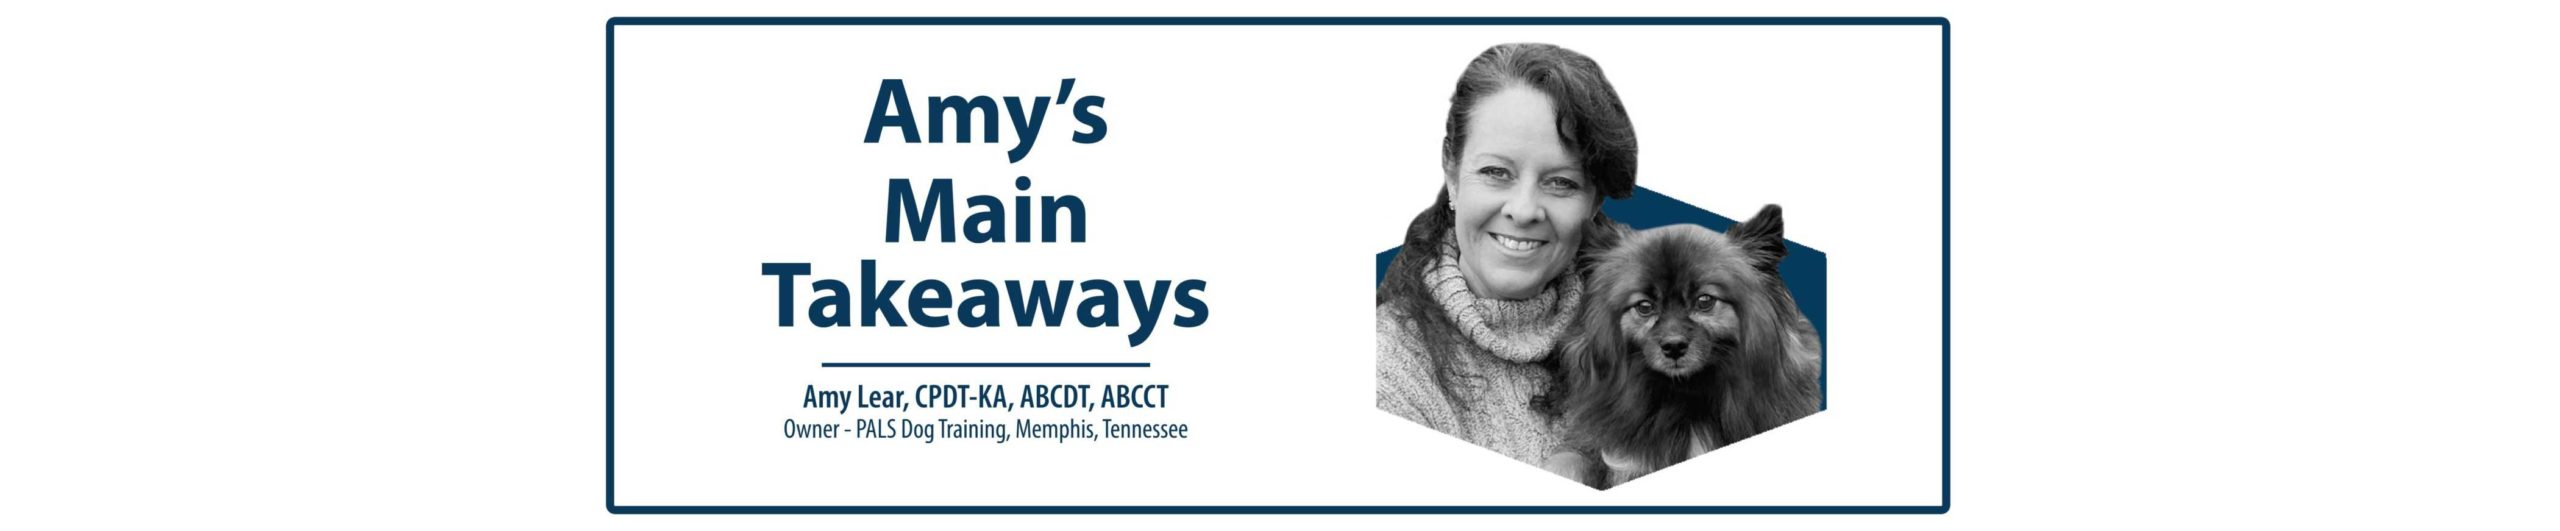 Amy Lear, CPDT-KA, ABCDT, ABCCT and her pup header